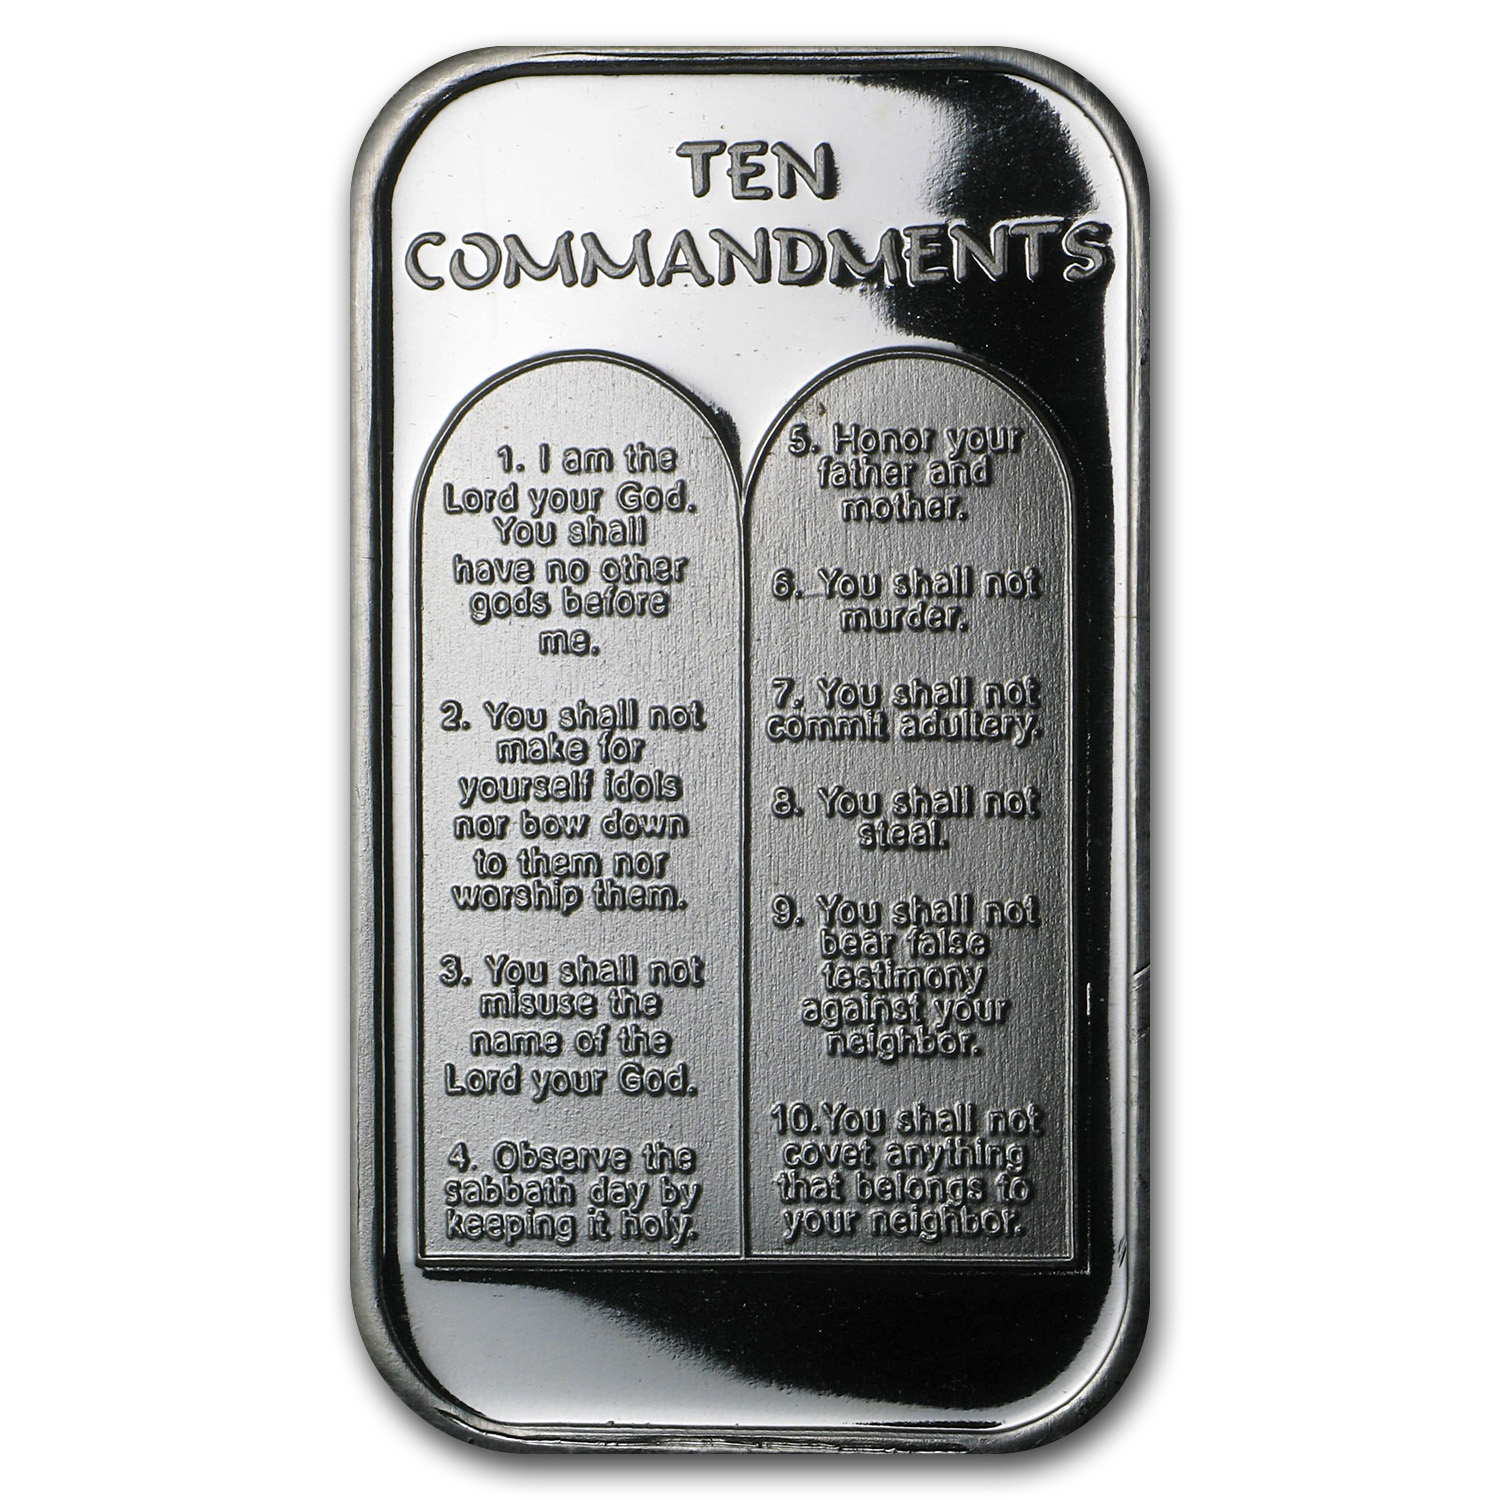 1 oz Silver Bars - Ten Commandments (German)